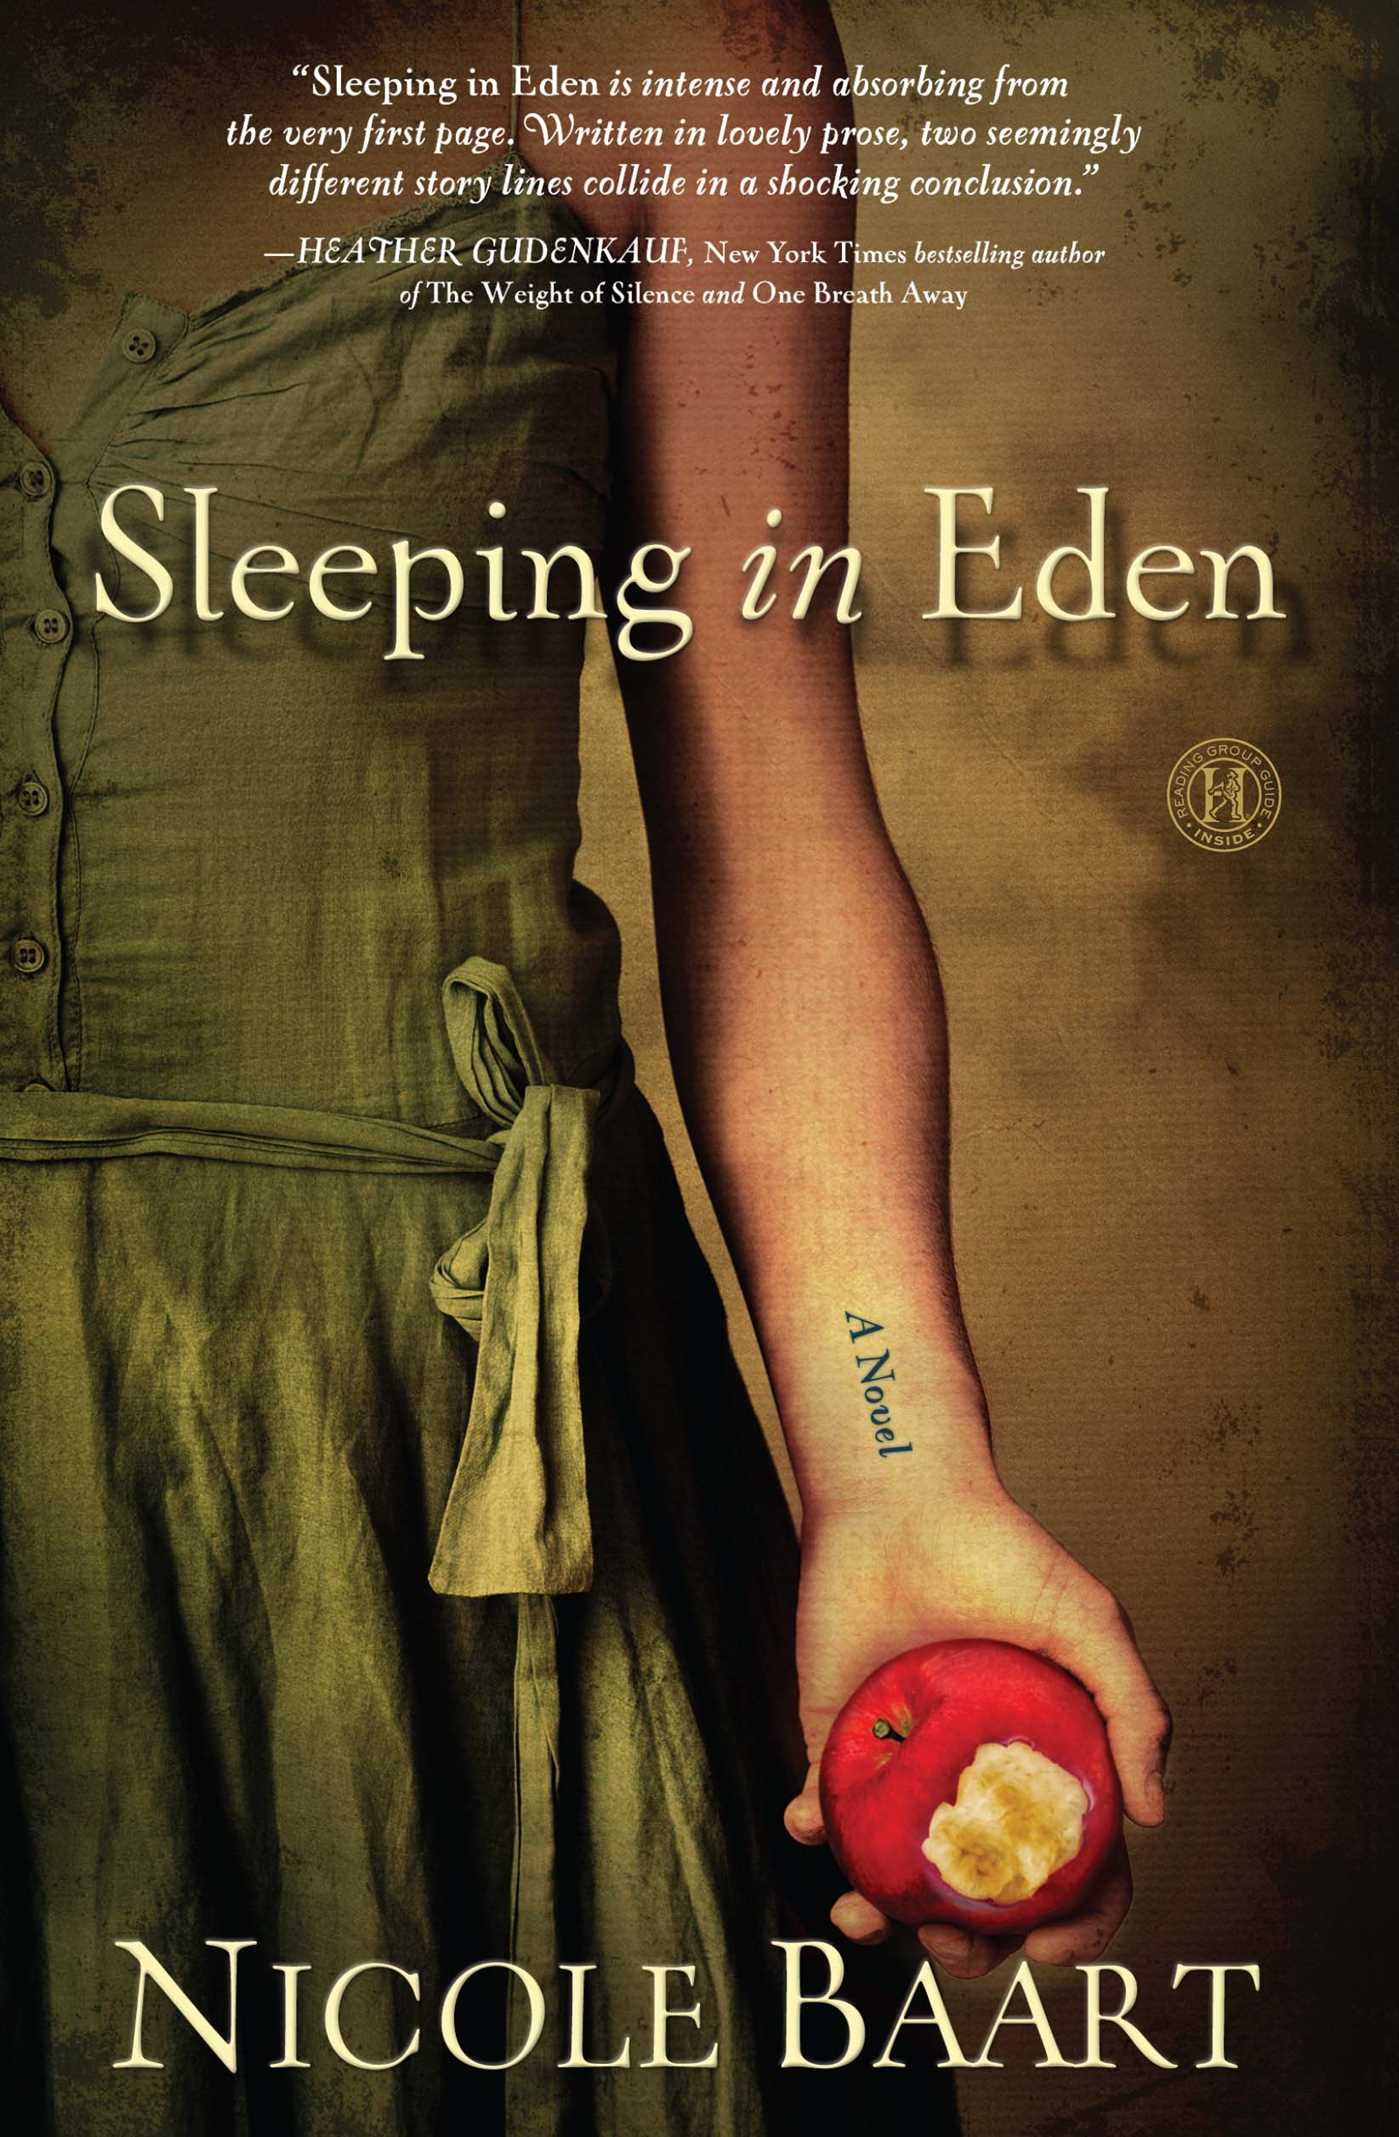 Sleeping-in-eden-9781439197363_hr